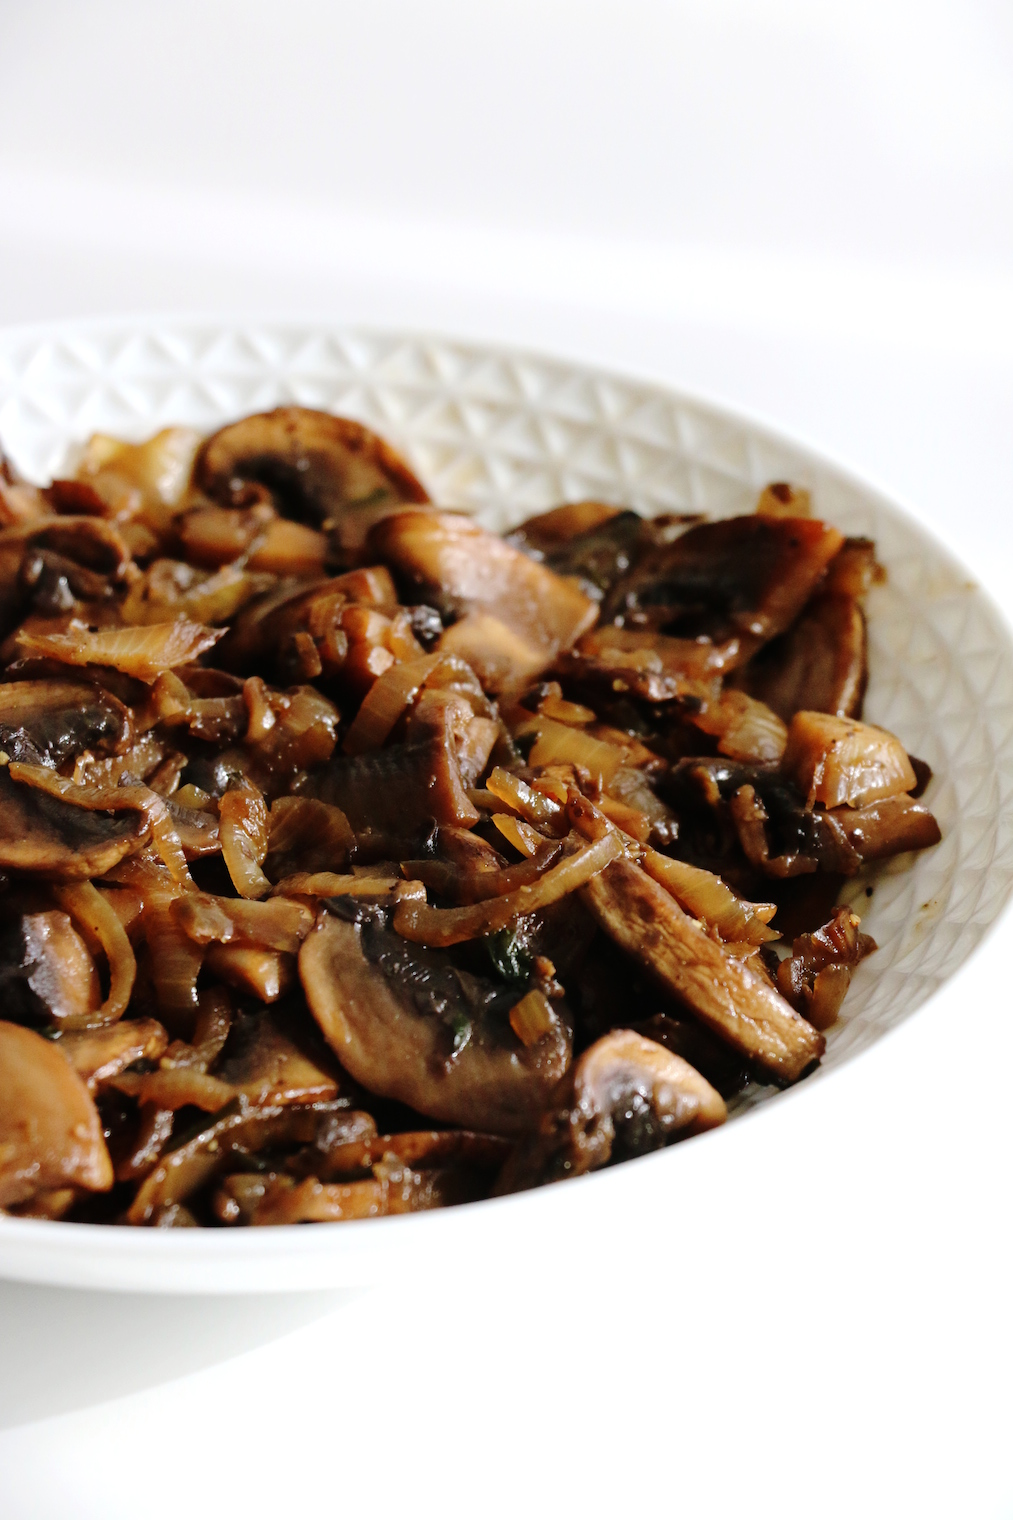 cooked mushroom and caramelized onion salad